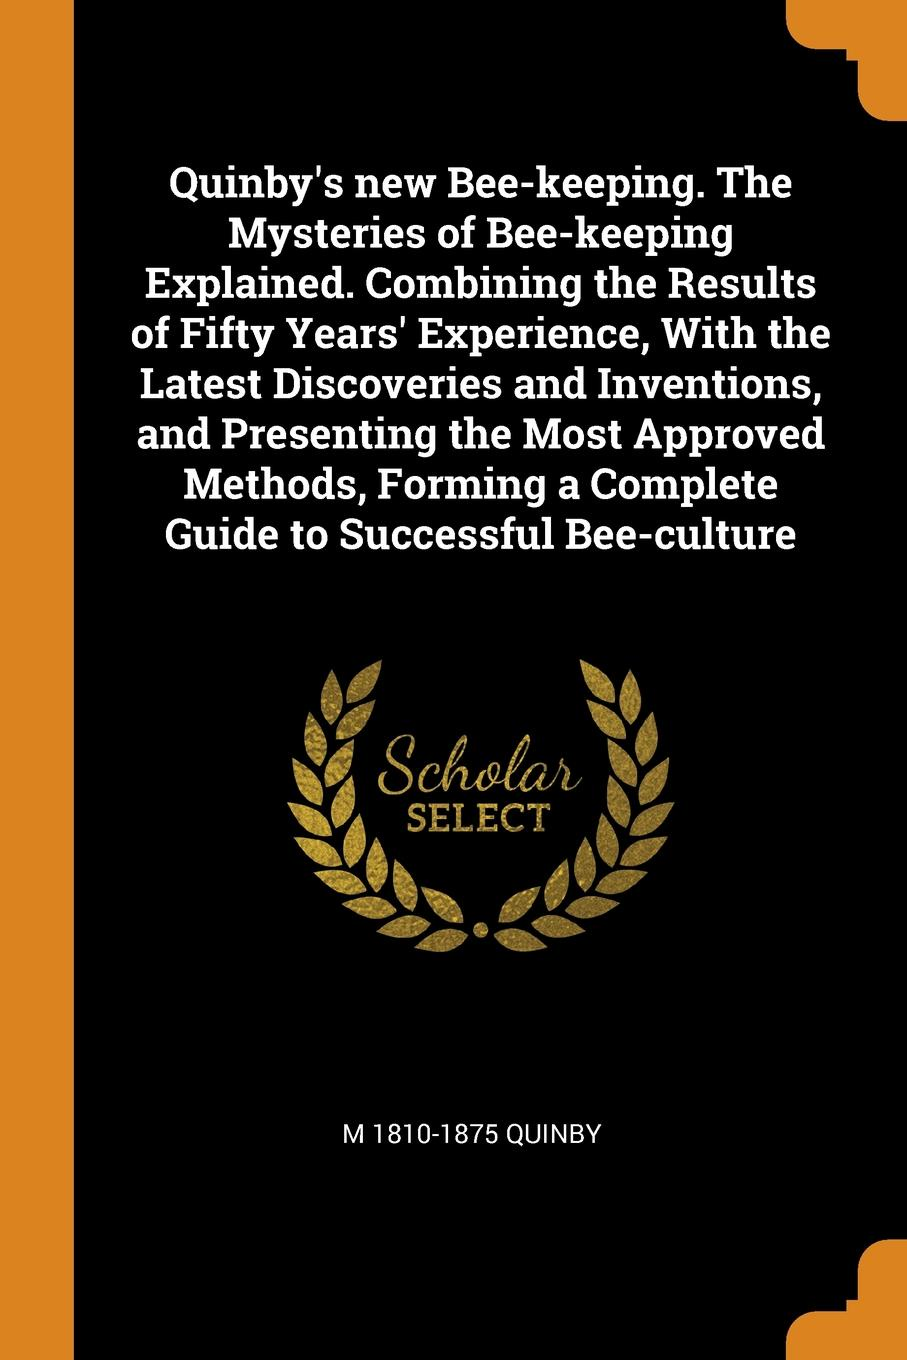 M 1810-1875 Quinby Quinby's new Bee-keeping. The Mysteries of Bee-keeping Explained. Combining the Results of Fifty Years' Experience, With the Latest Discoveries and Inventions, and Presenting the Most Approved Methods, Forming a Complete Guide to Successful Bee-cu... a manual of bee keeping